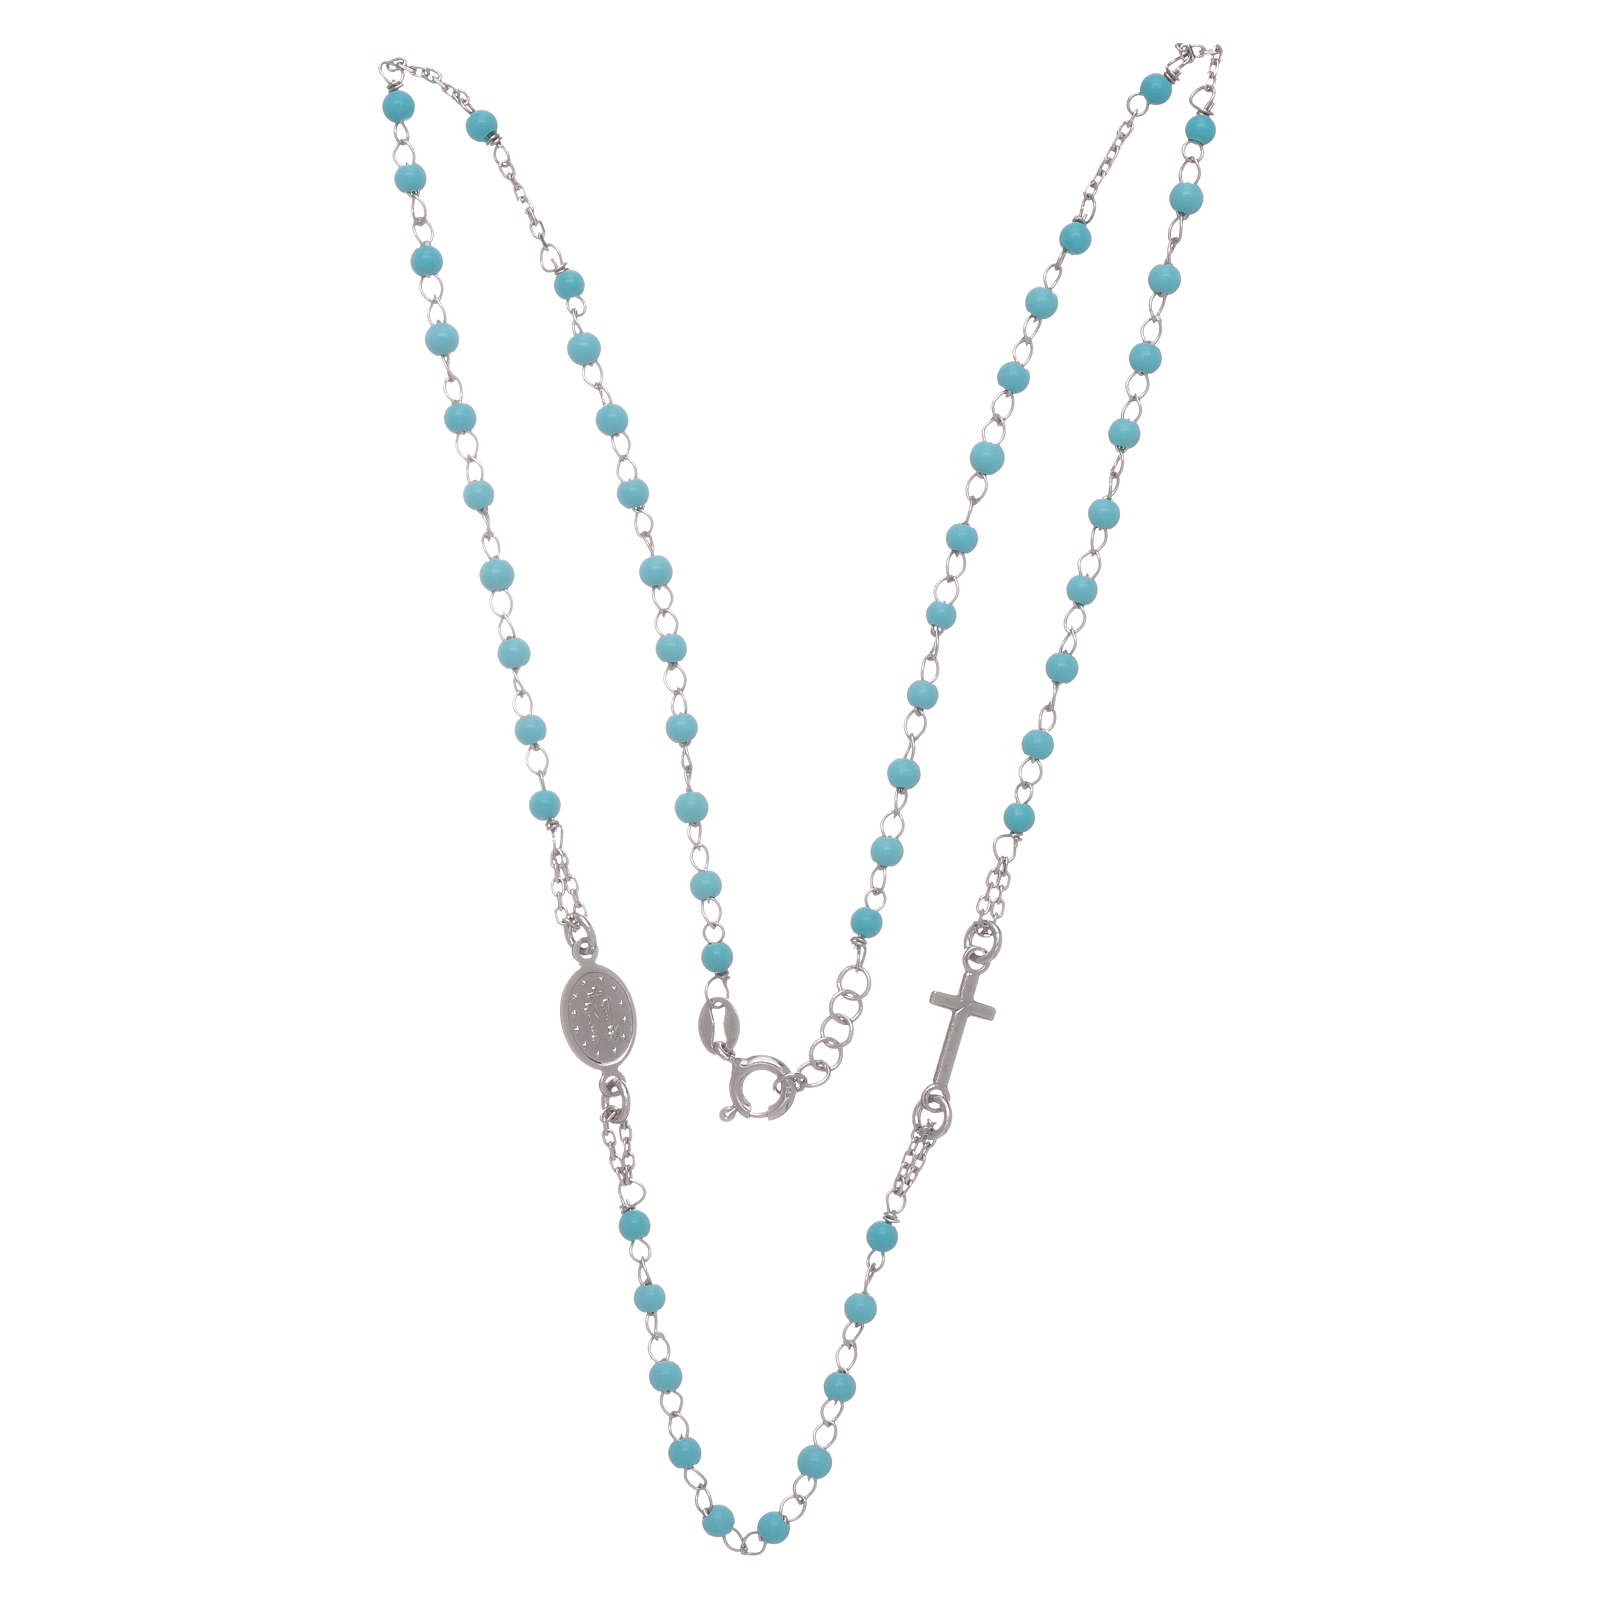 Rosary choker with light blue spheres 4 mm and silver chain 4